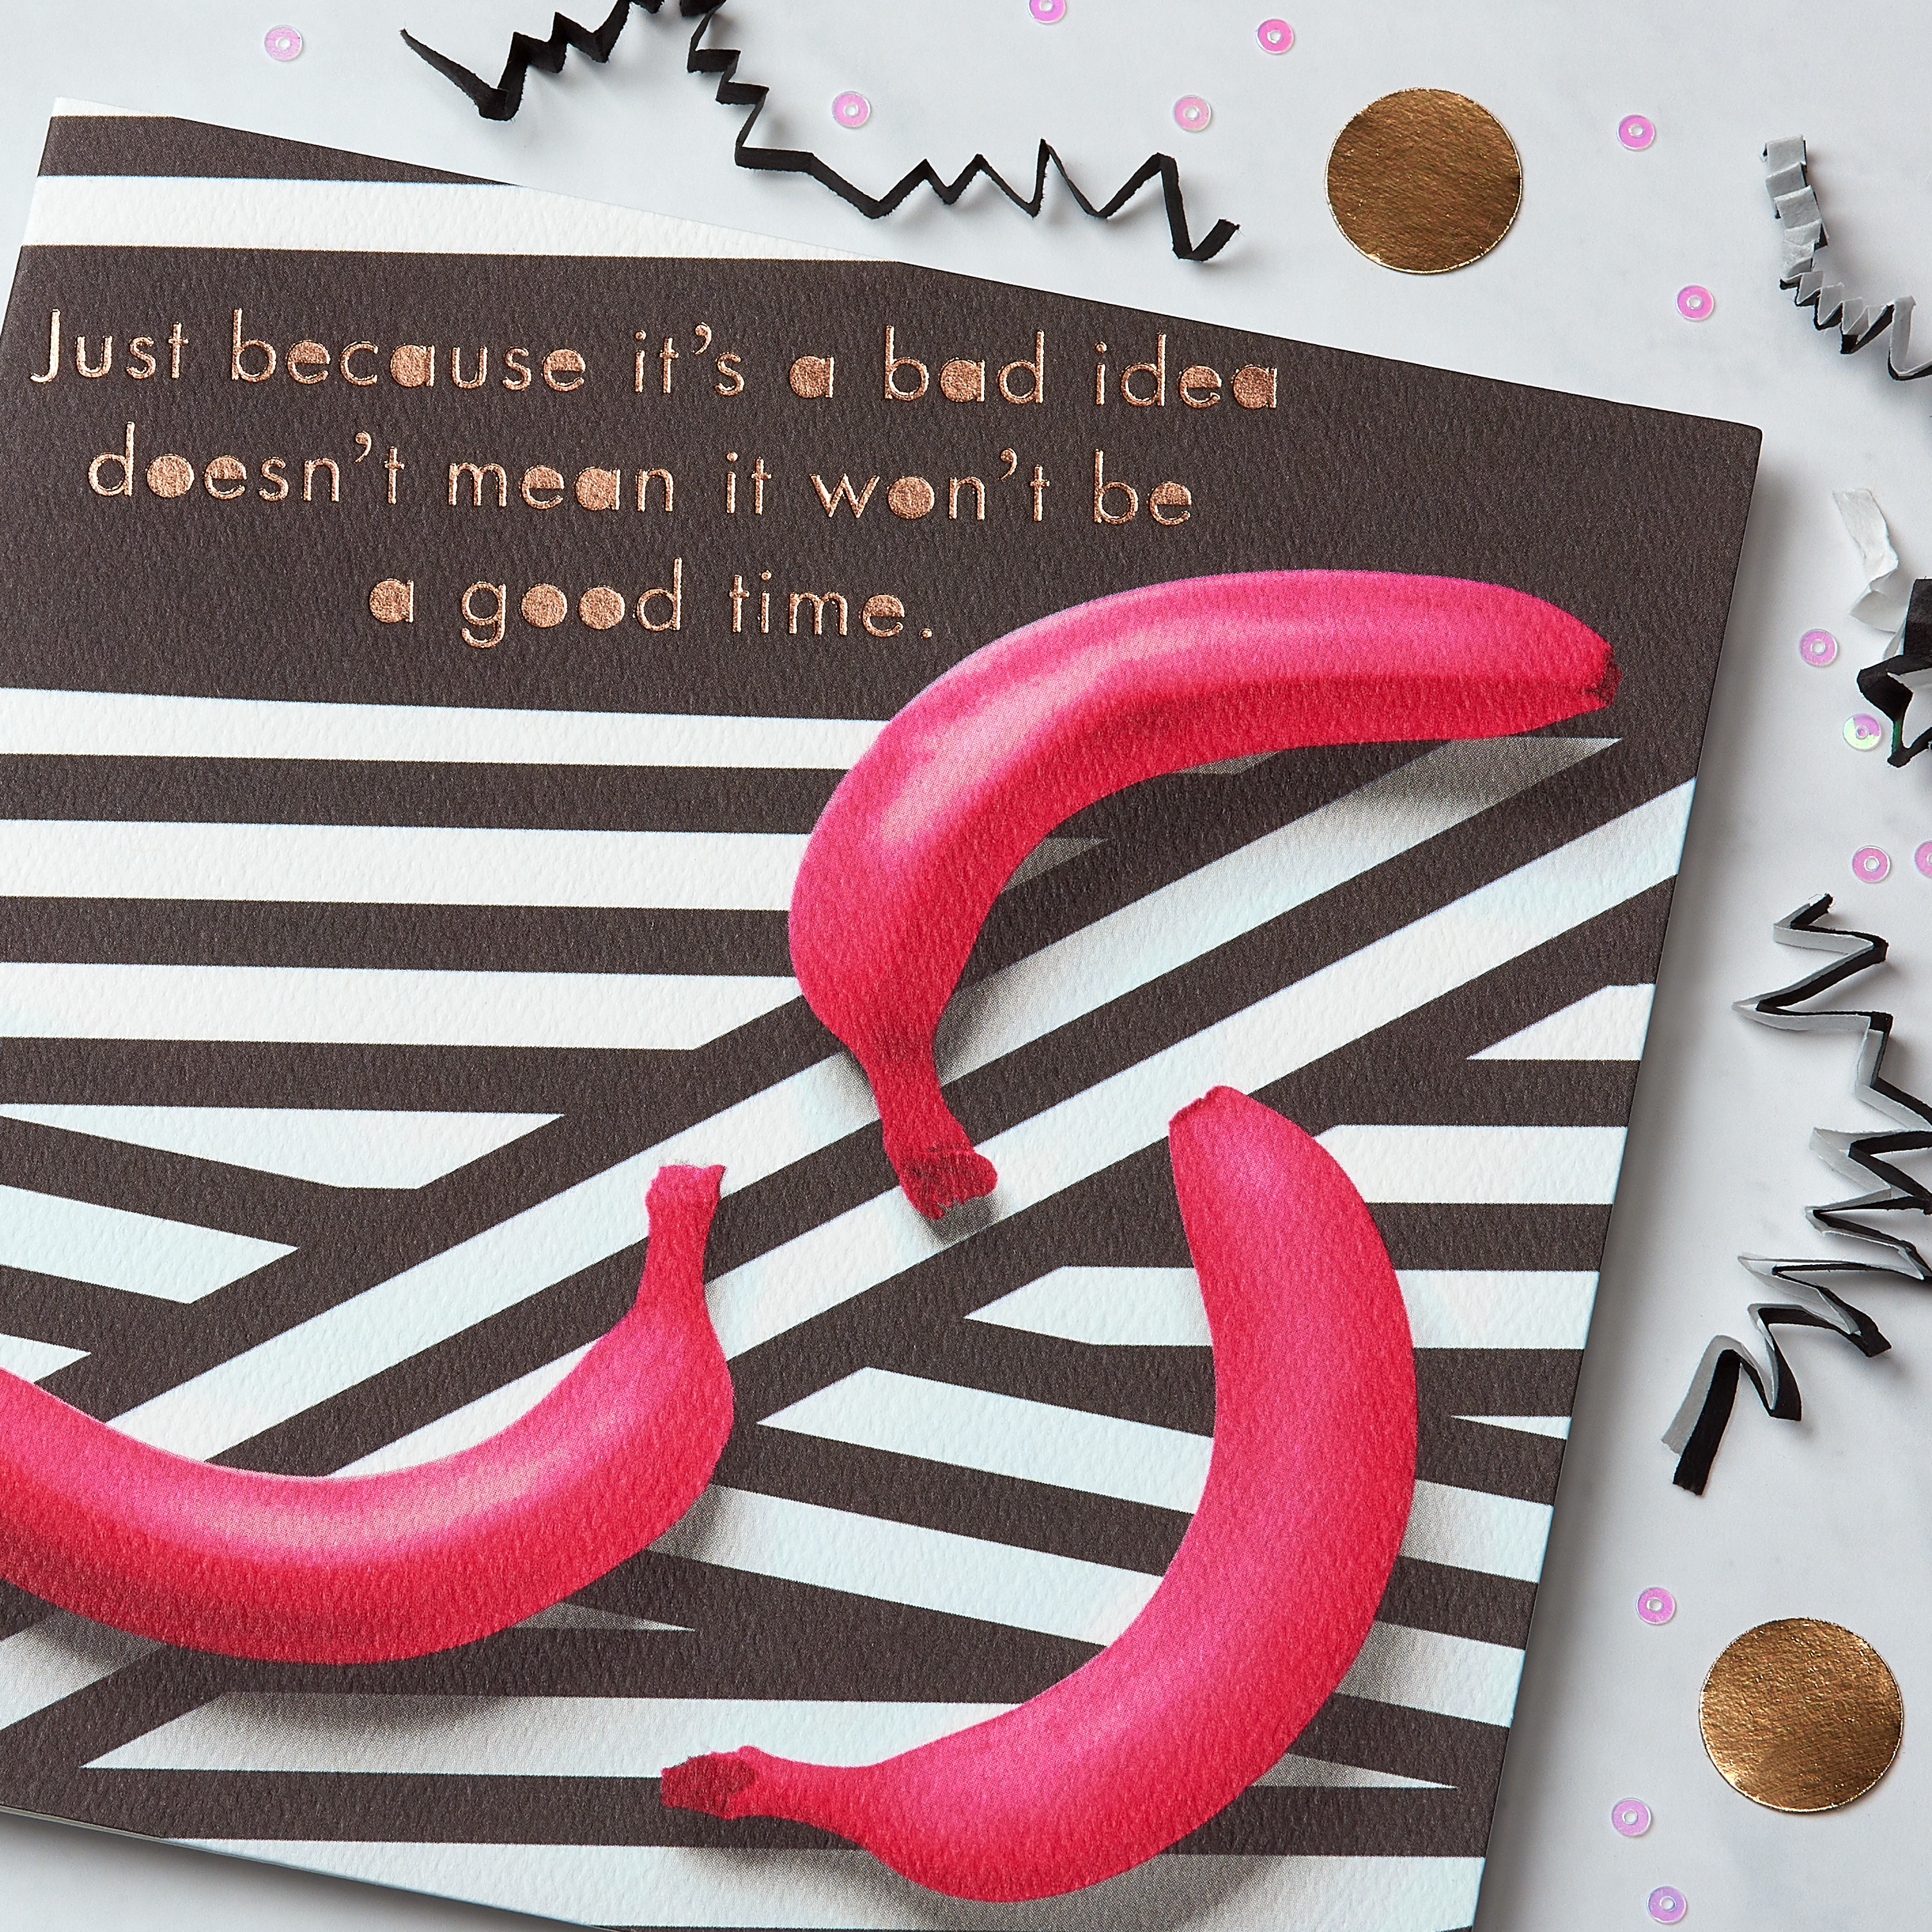 Bad Idea Greeting Card - Birthday, Friendship image